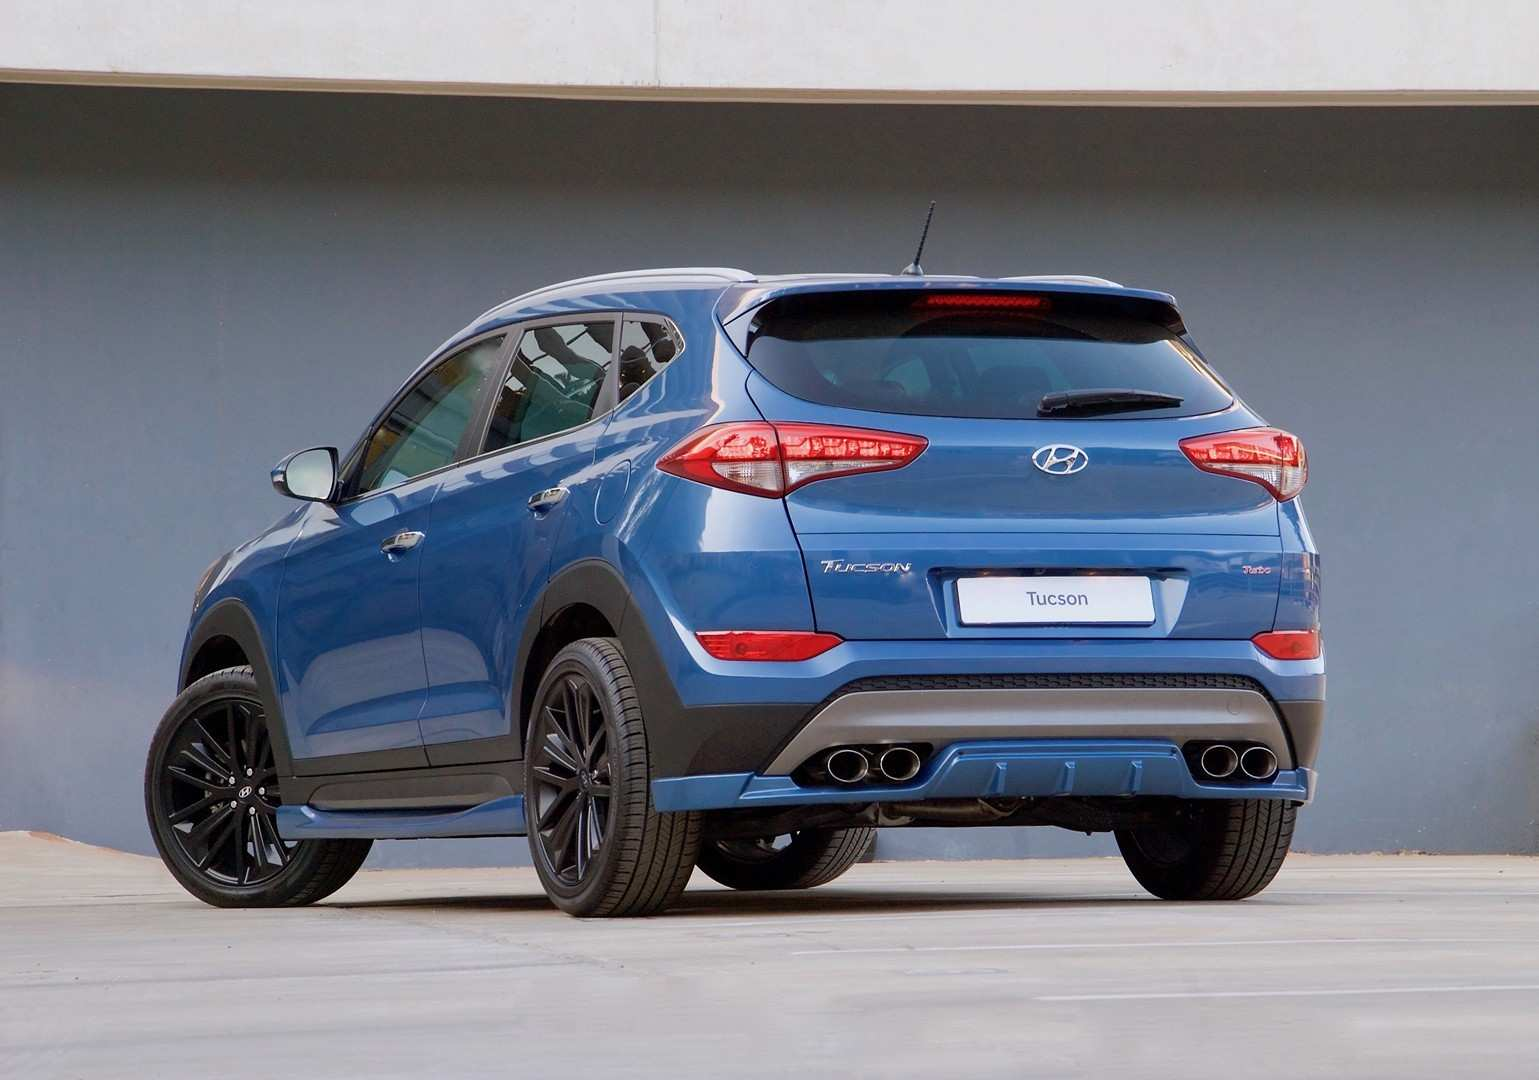 56 Gallery of Hyundai Tucson N 2020 Pricing for Hyundai Tucson N 2020